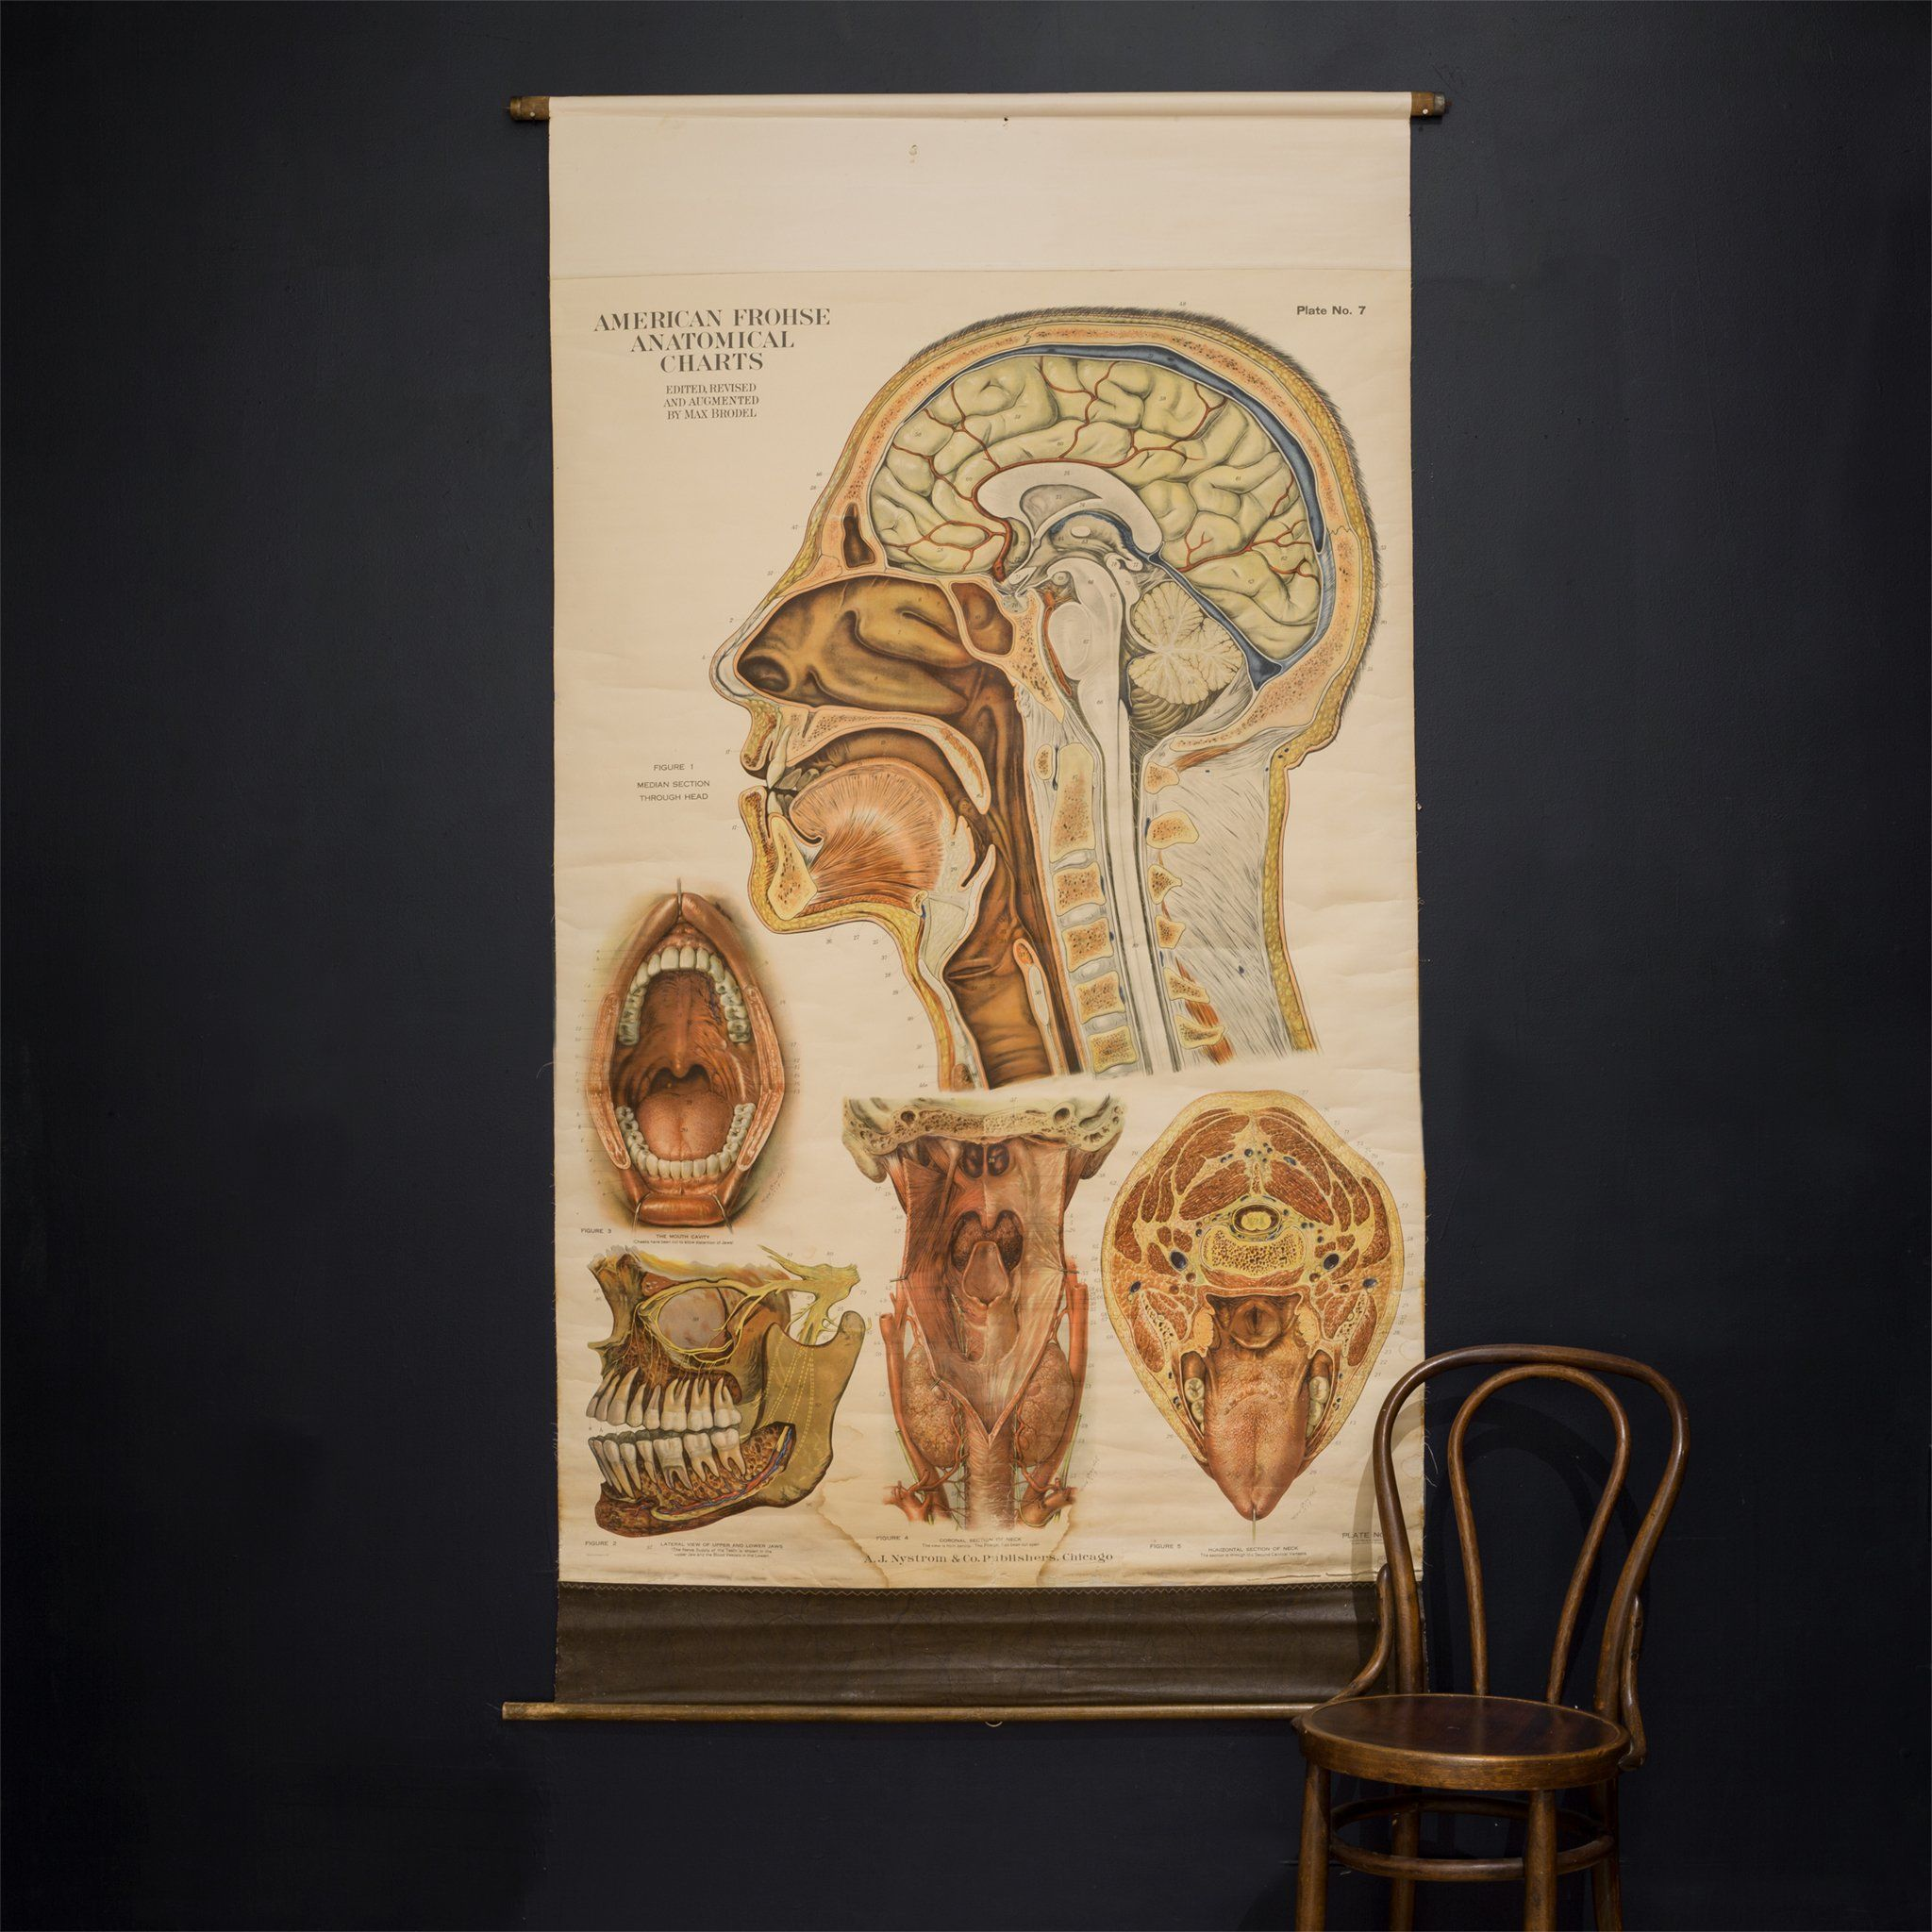 American Frouse Anatomical Chart c.1918 9ce0903792f5d439f582f5e07025d36d